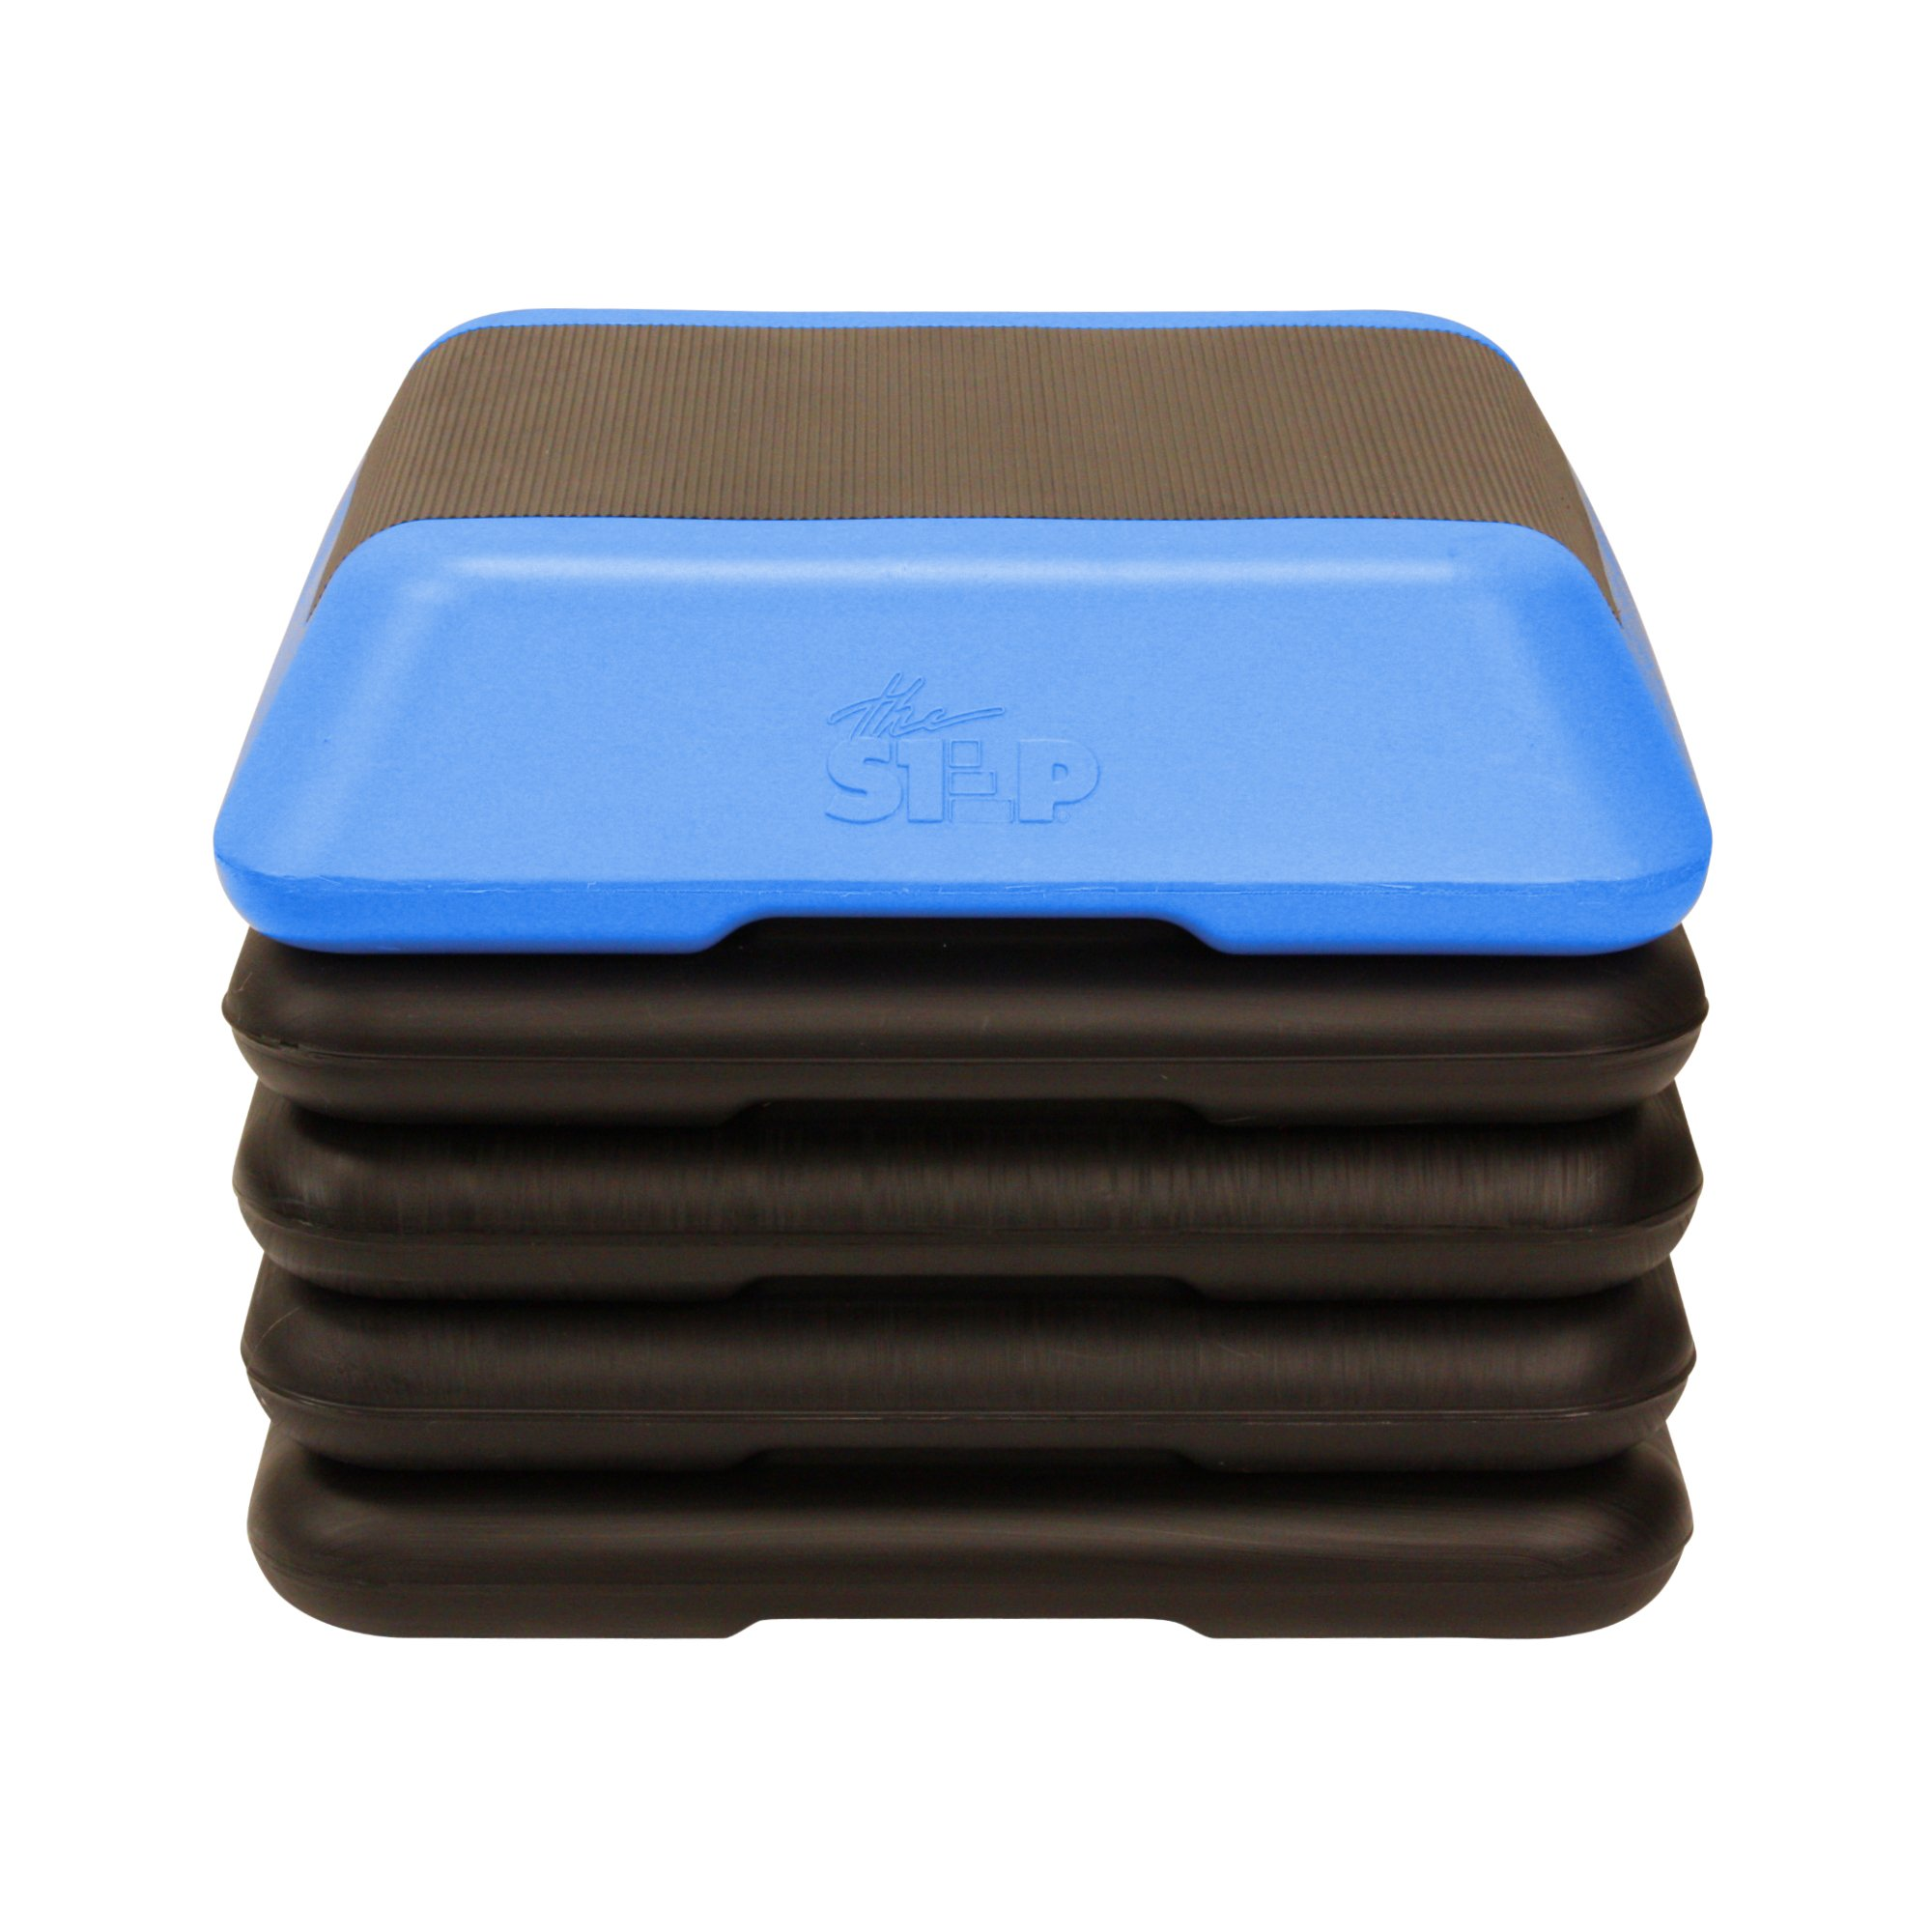 The Step High Step Aerobic Exercise Nonslip Platform Includes 4 Risers and Streaming Workout Videos